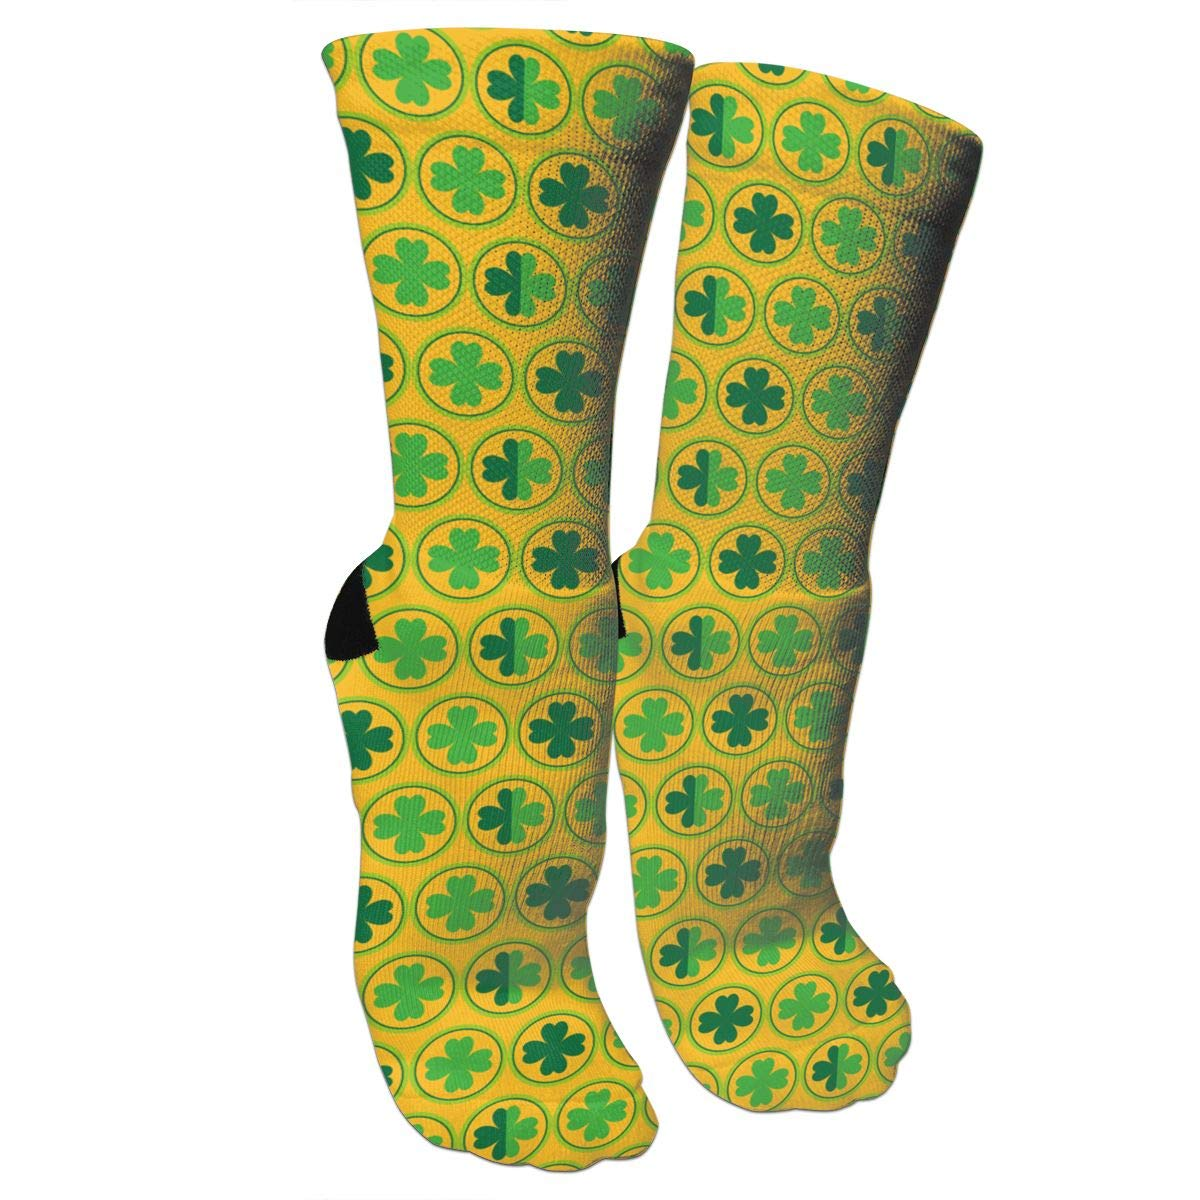 Patricks Day Crazy Socks Casual Cotton Crew Socks Cute Funny Sock great for sports and hiking Happy St